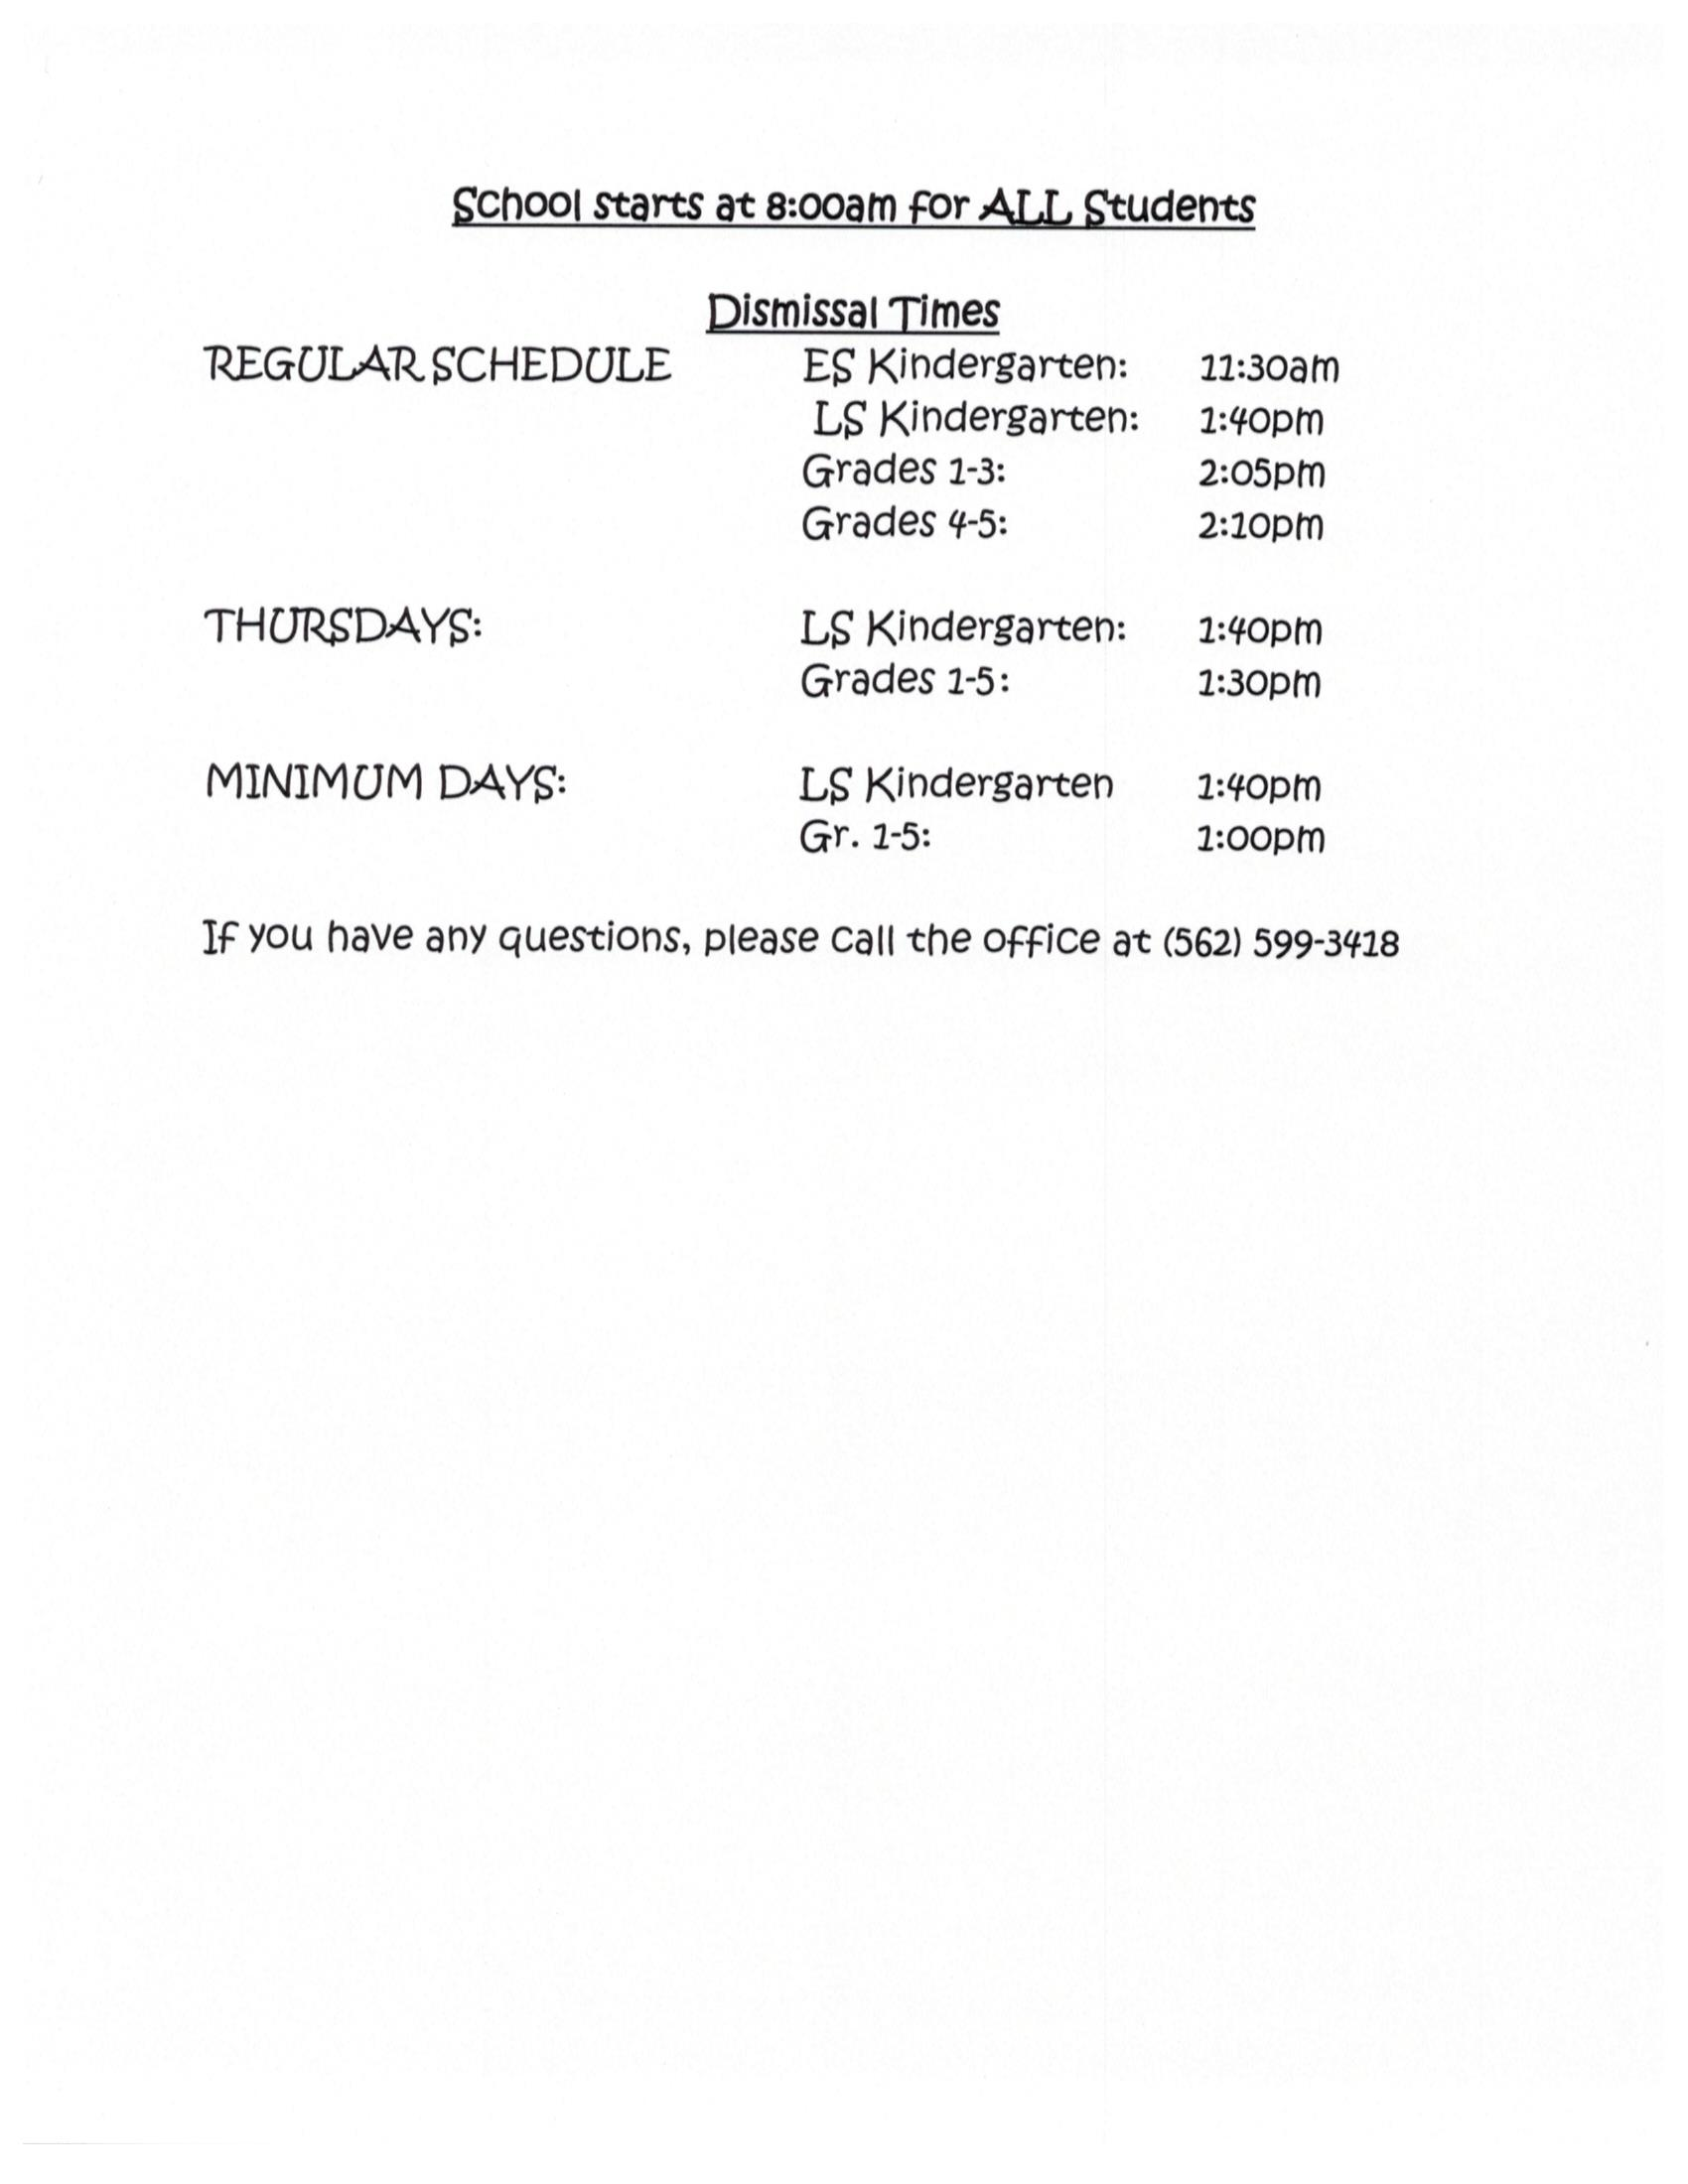 bell schedule ofr all students